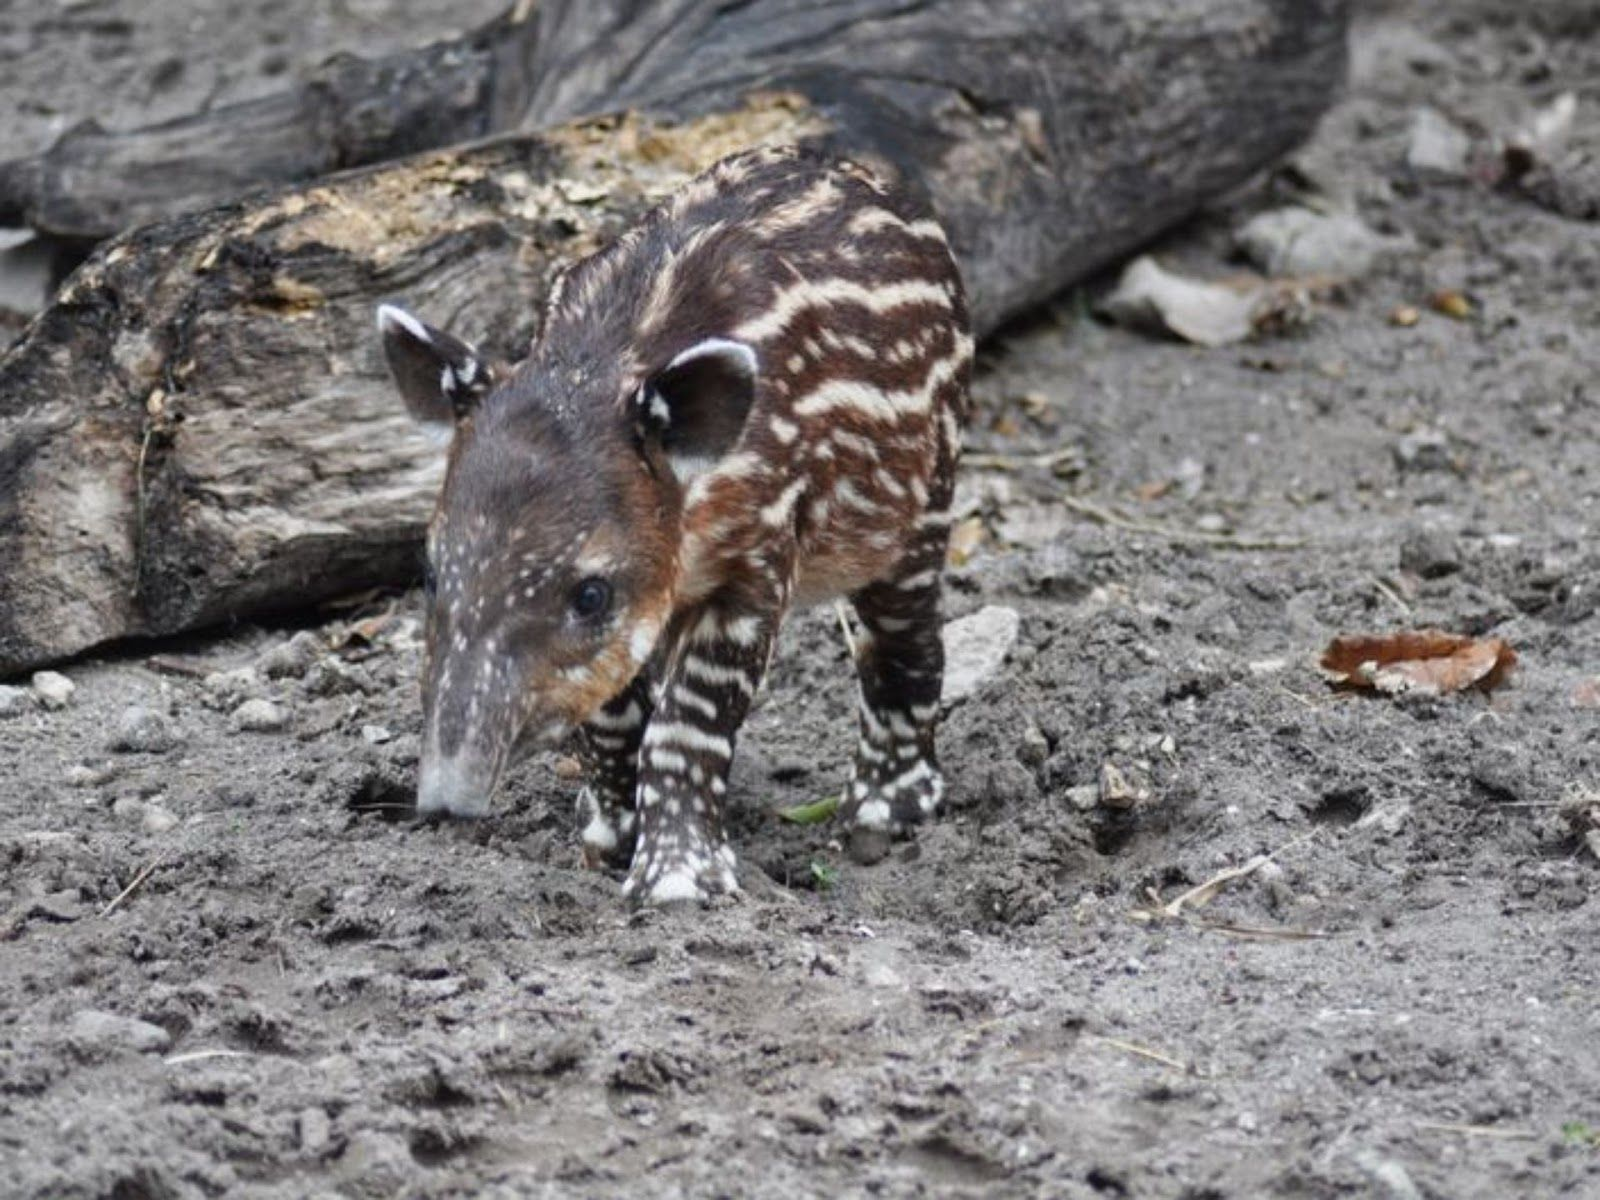 Cute new zoo babies from across the USA | Balcan Expres